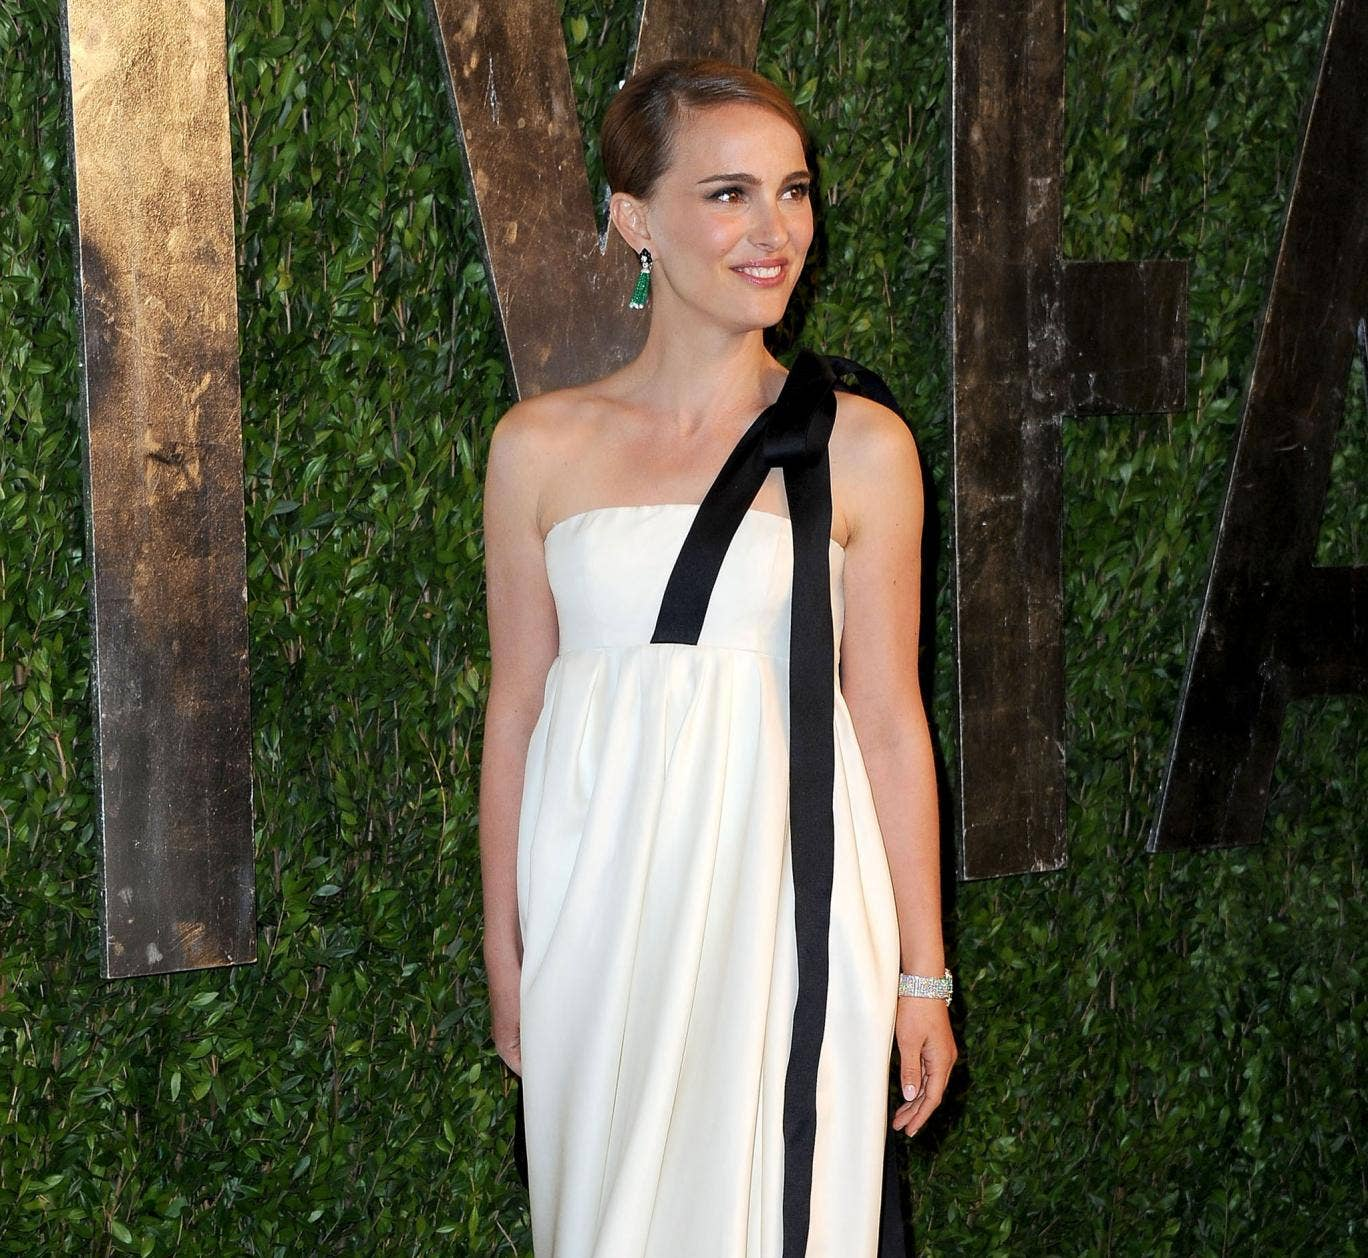 Natalie Portman has attacked the way Hollywood presents women